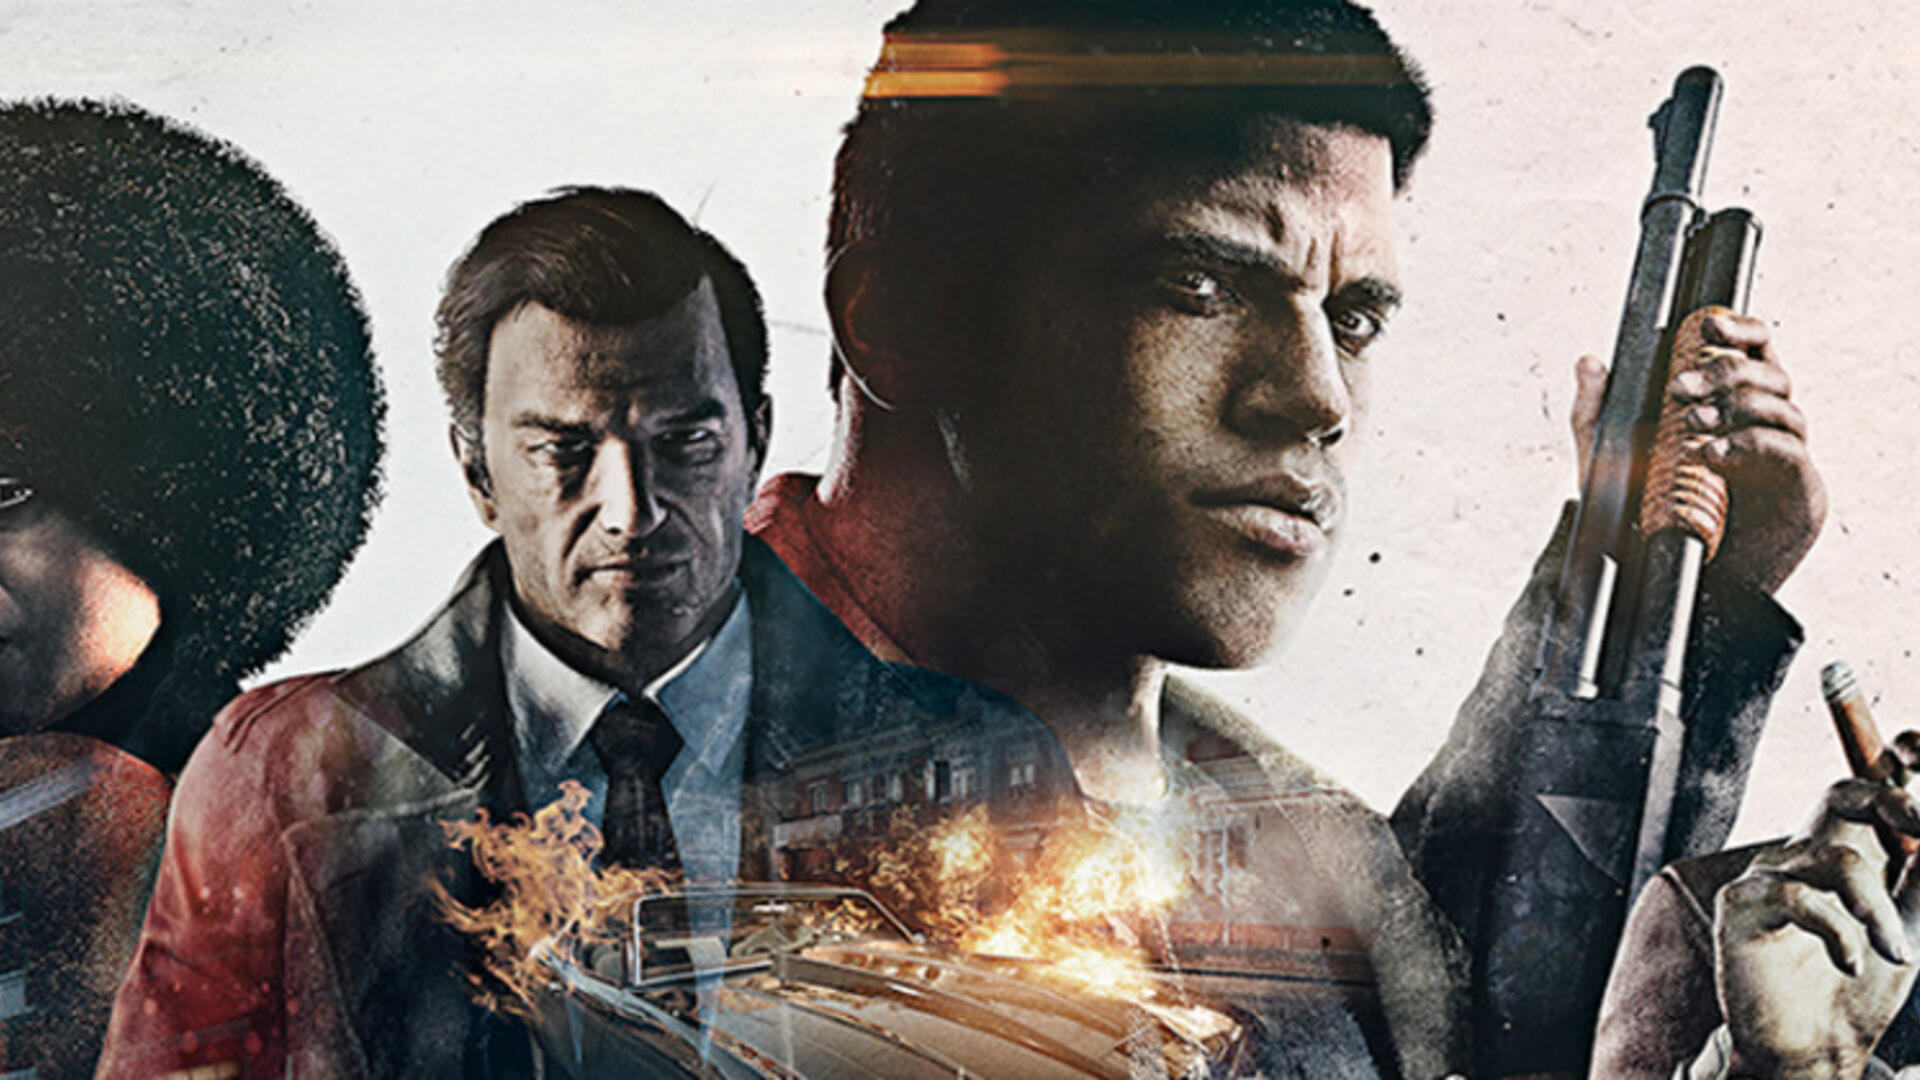 Mafia 3 PC Review: Take Me for What I'm Worth